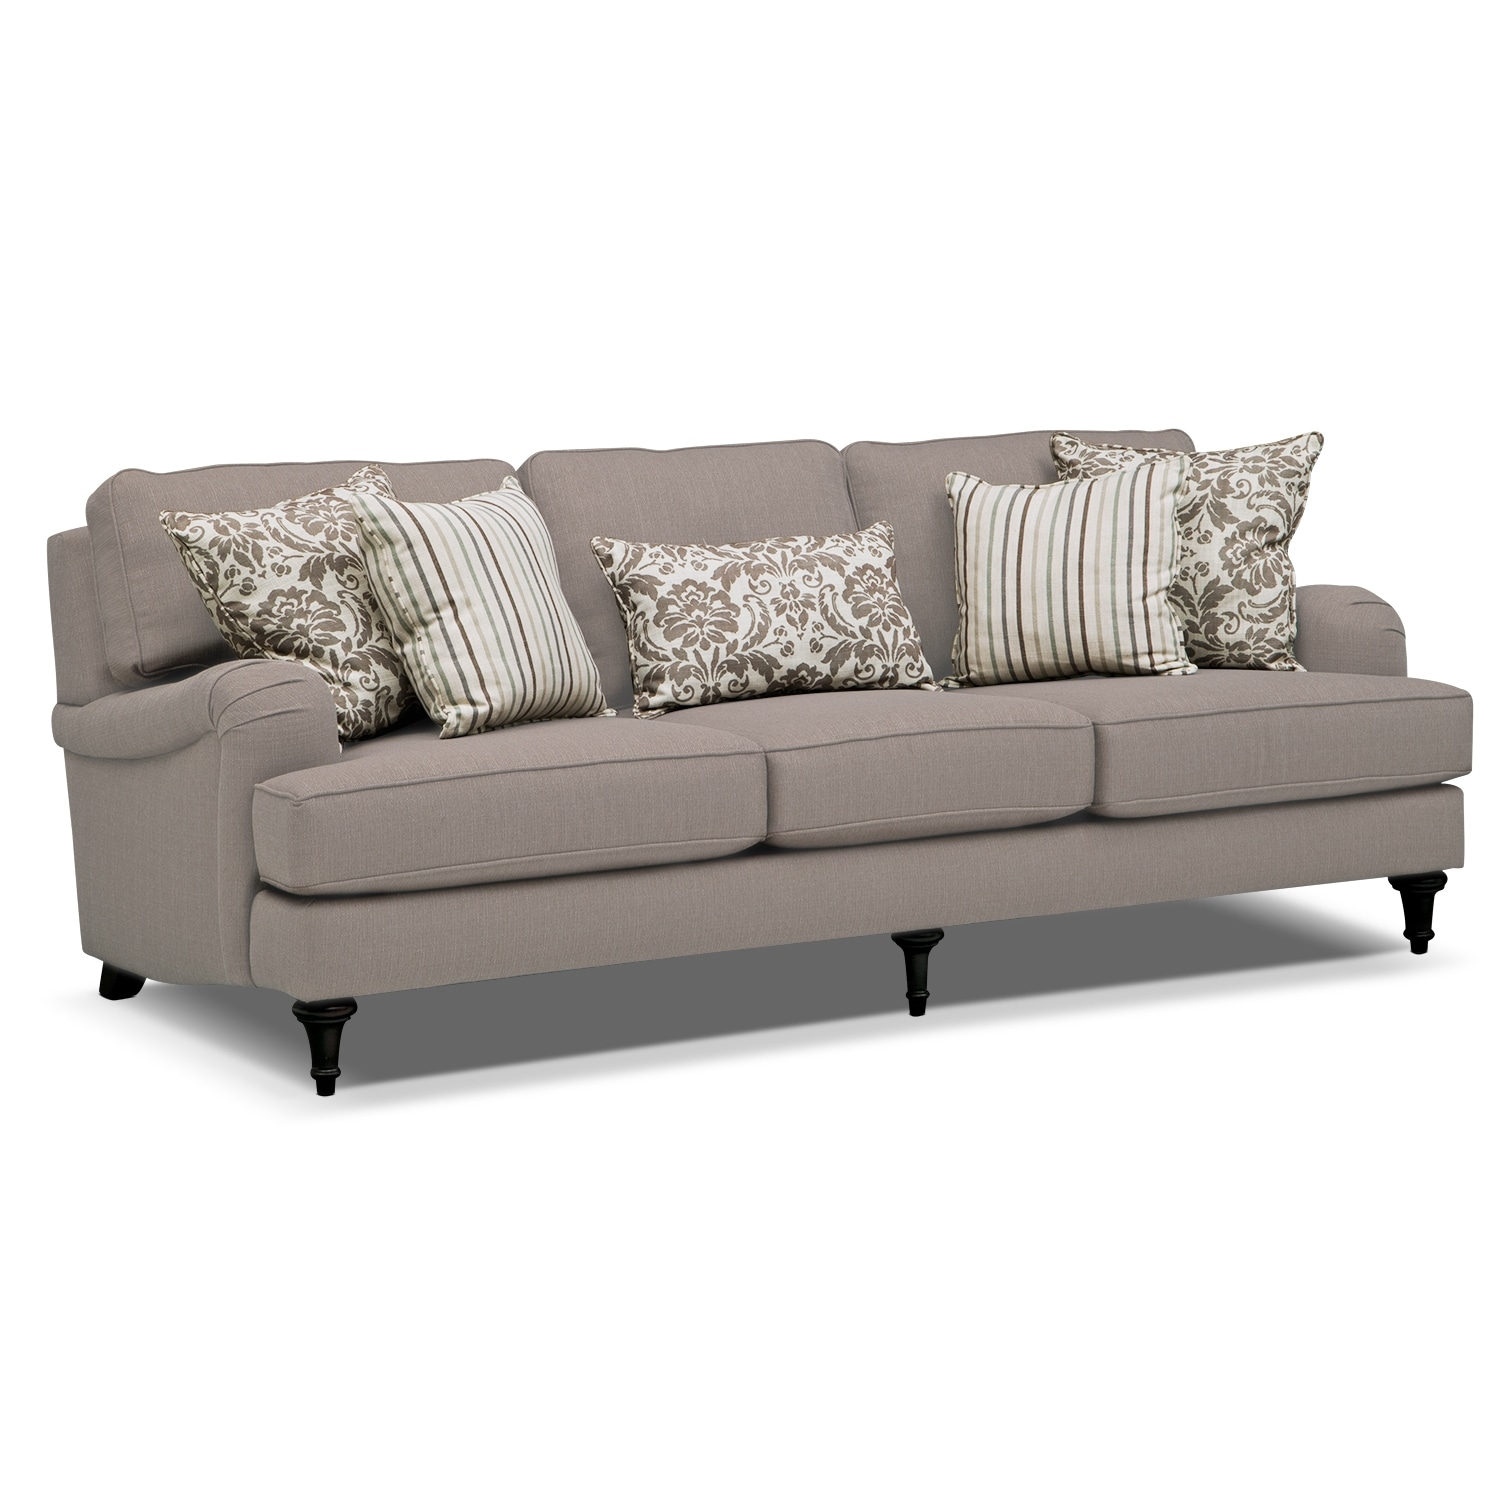 Candice sofa gray american signature furniture for Couch and loveseat